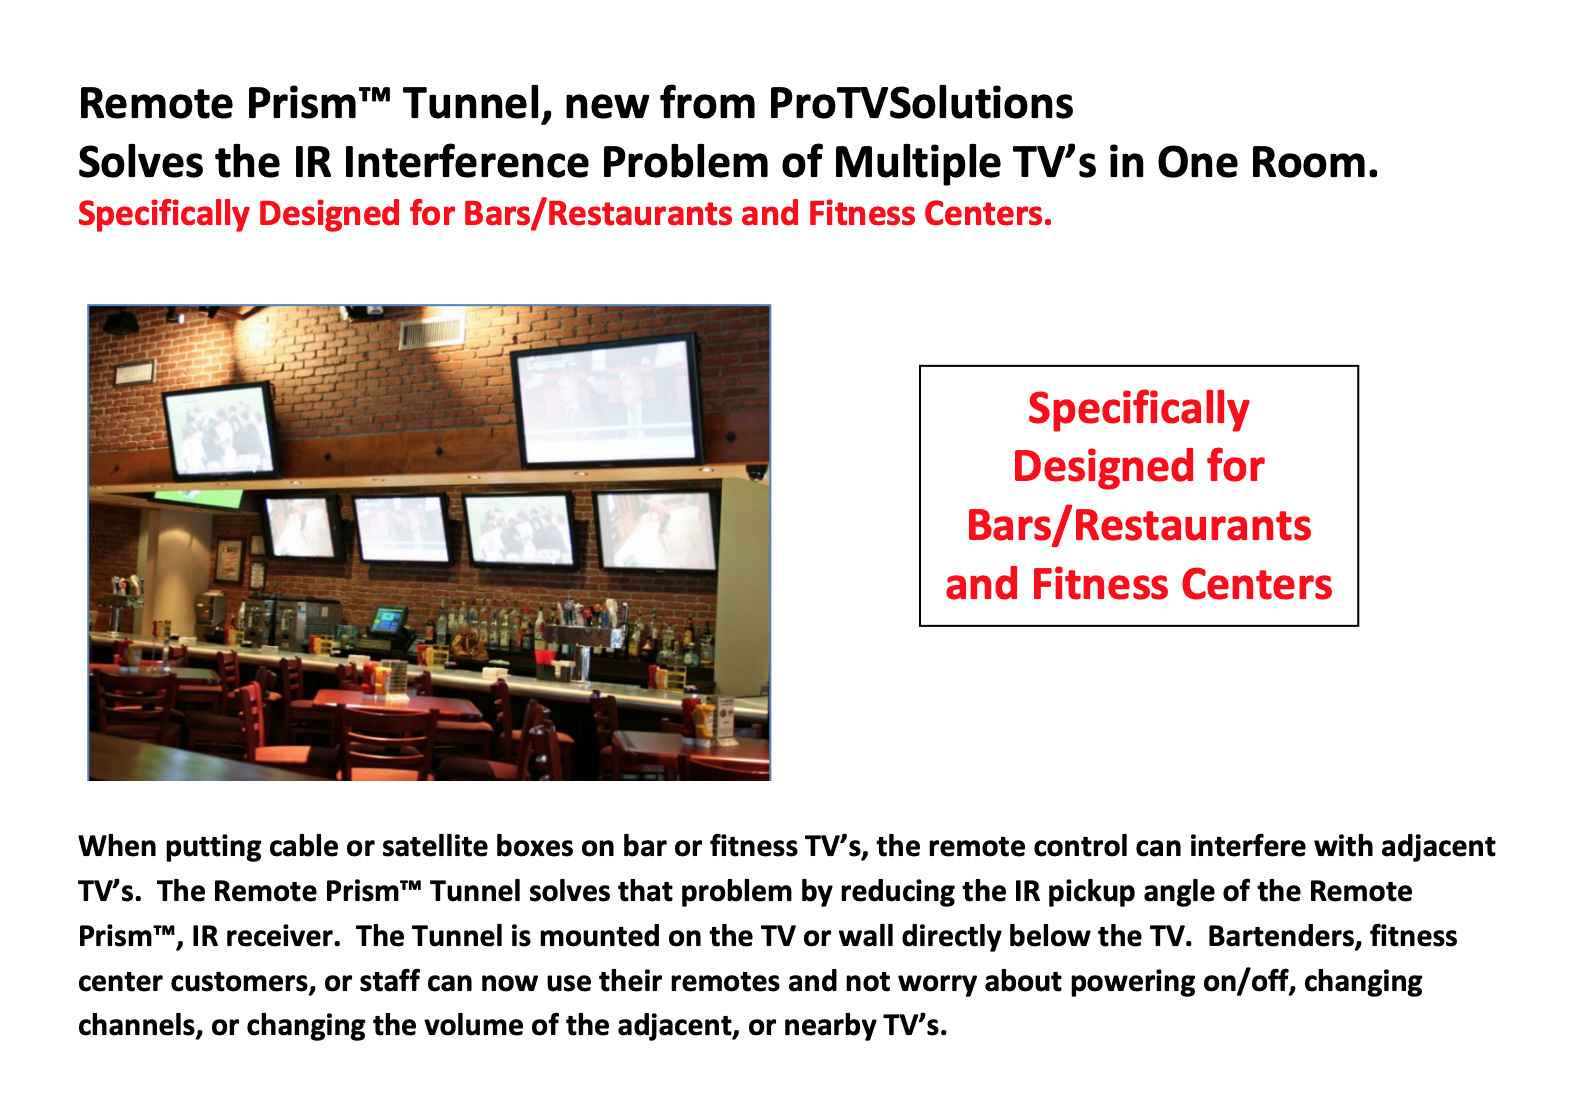 Remote Prism™ Tunnel, new from ProTVSolutions